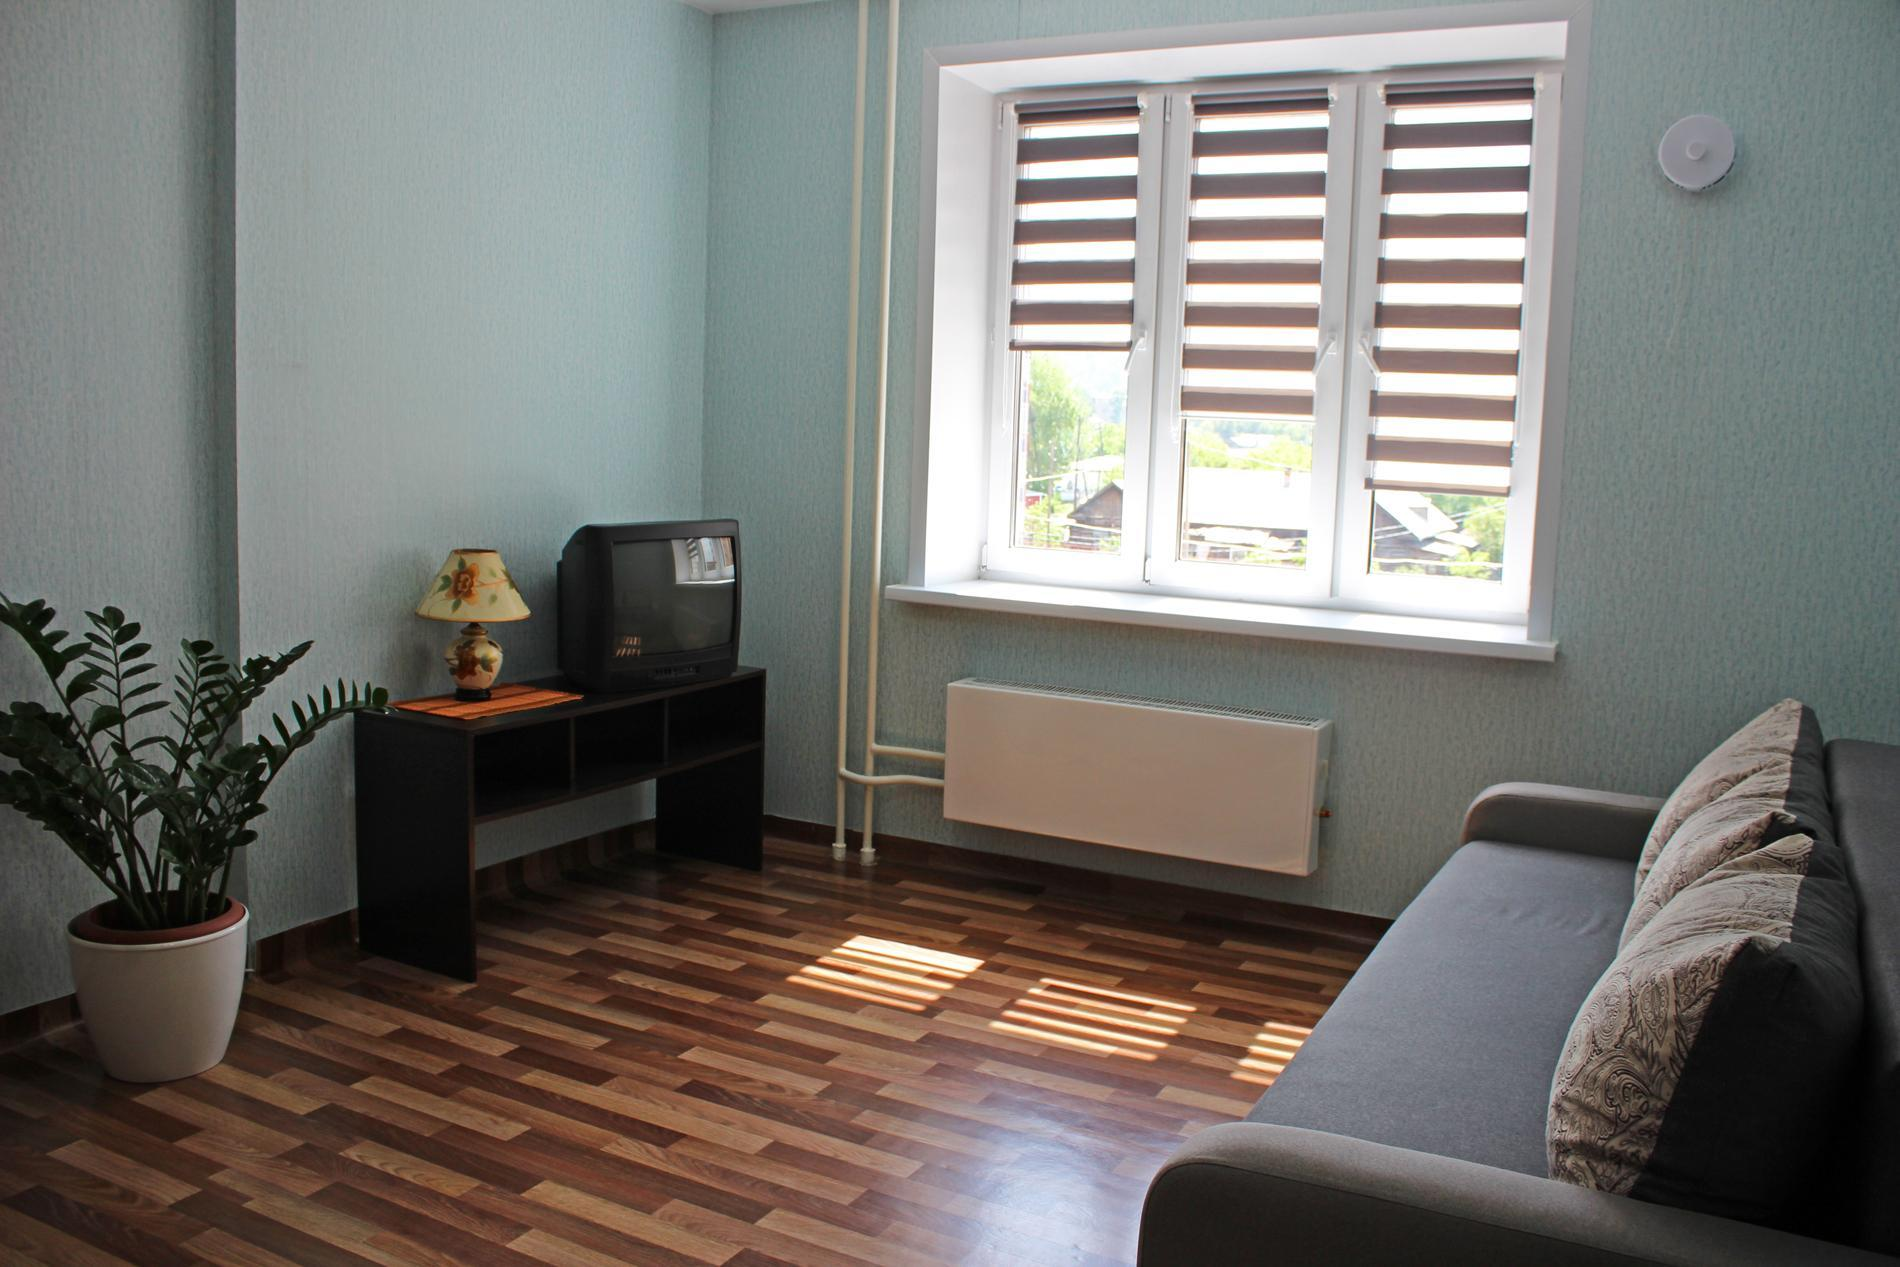 Spacious One room Apartment In A New House